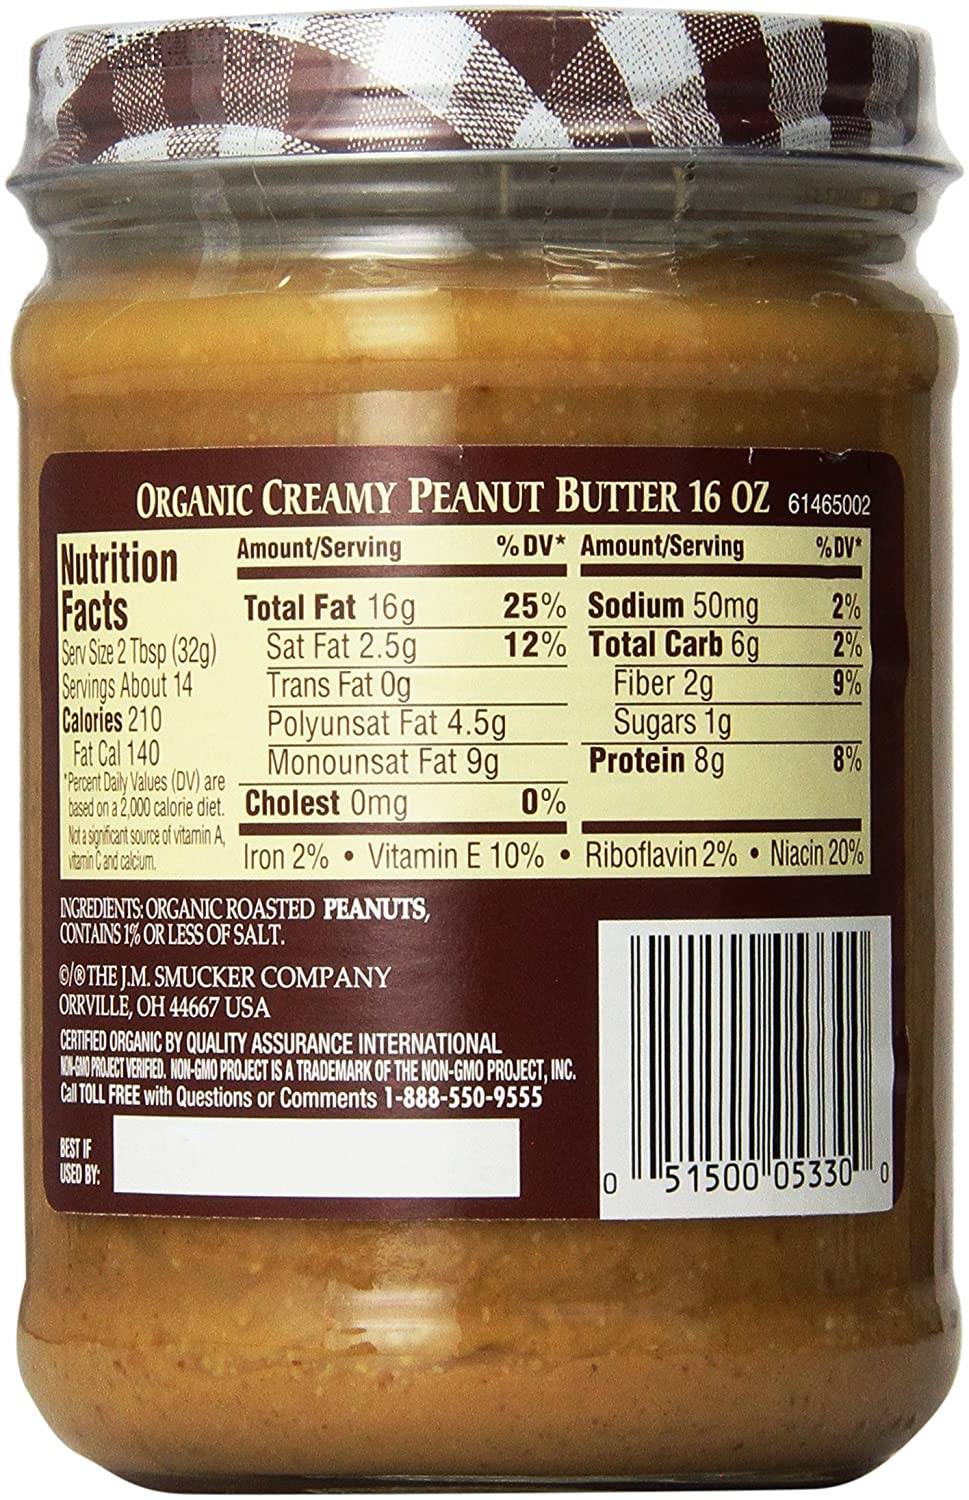 Peanuts Vs Natural Peanut Butter